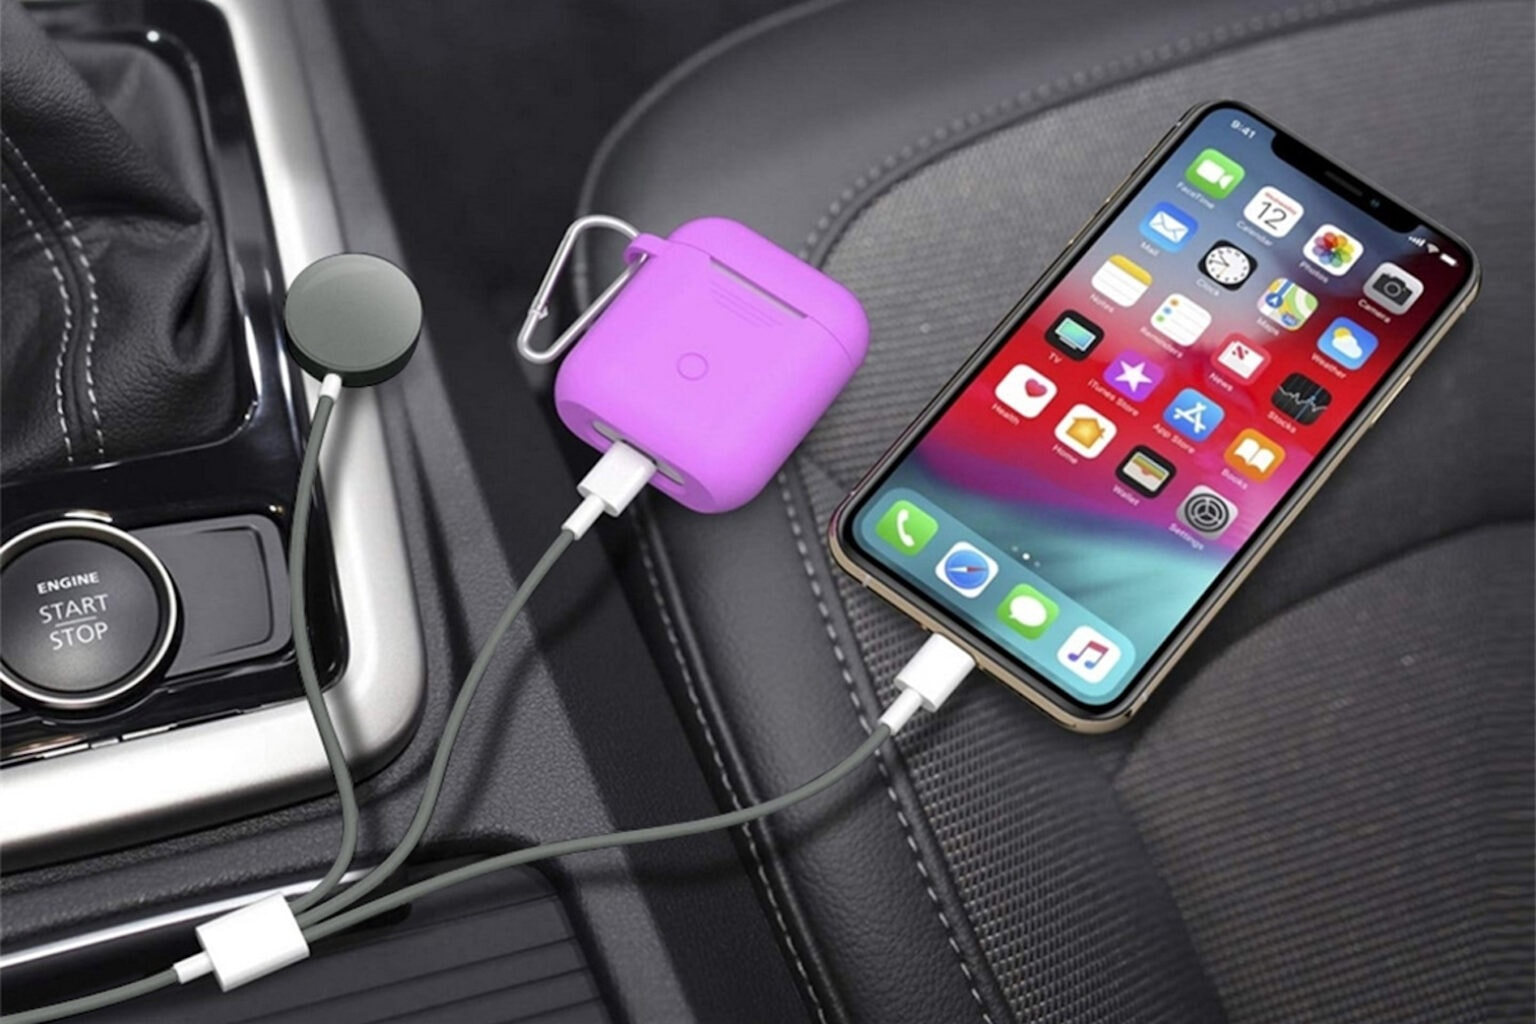 This 3-in-1 charger powers up your Apple devices.